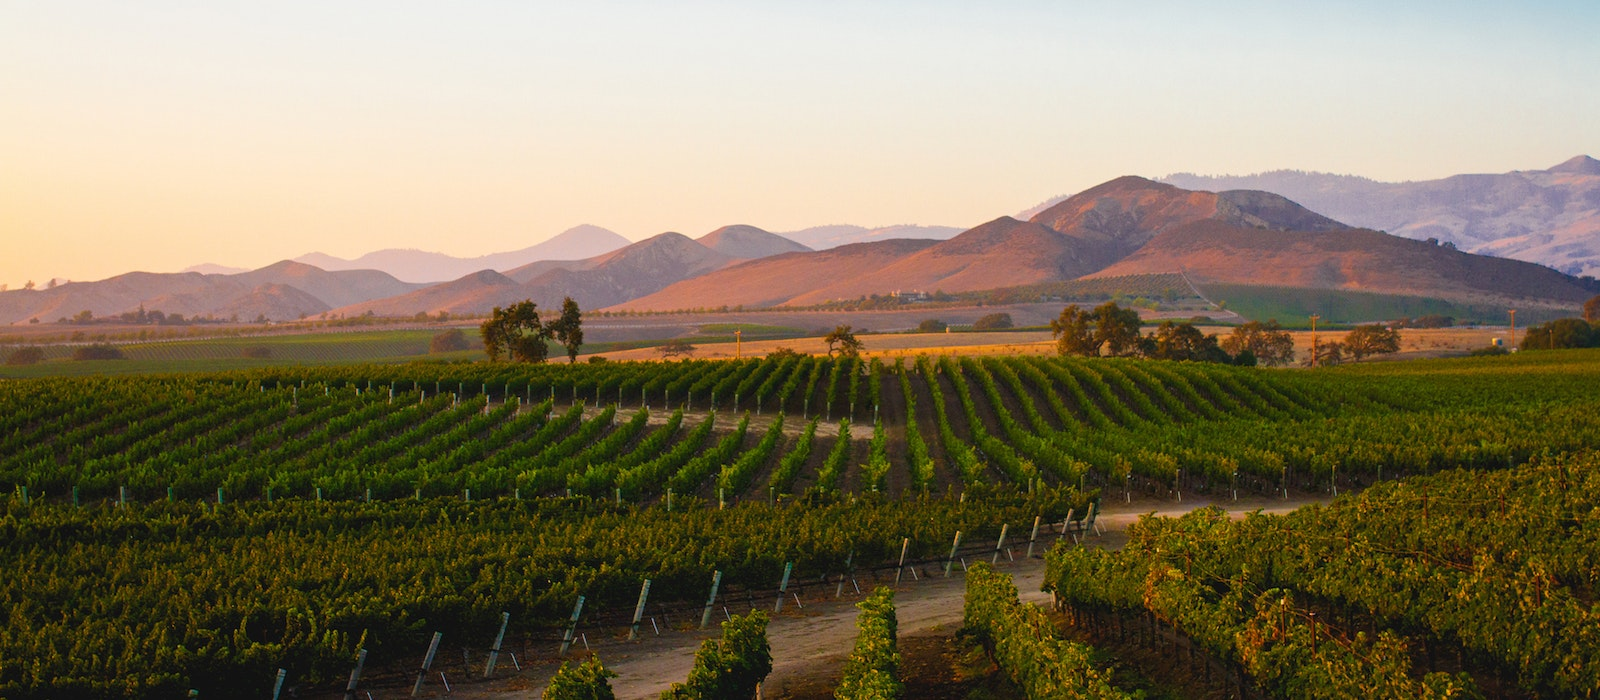 In the heart of Santa Barbara's wine country, the Santa Ynez Valley boasts picturesque grapevines at the base of rolling hills.